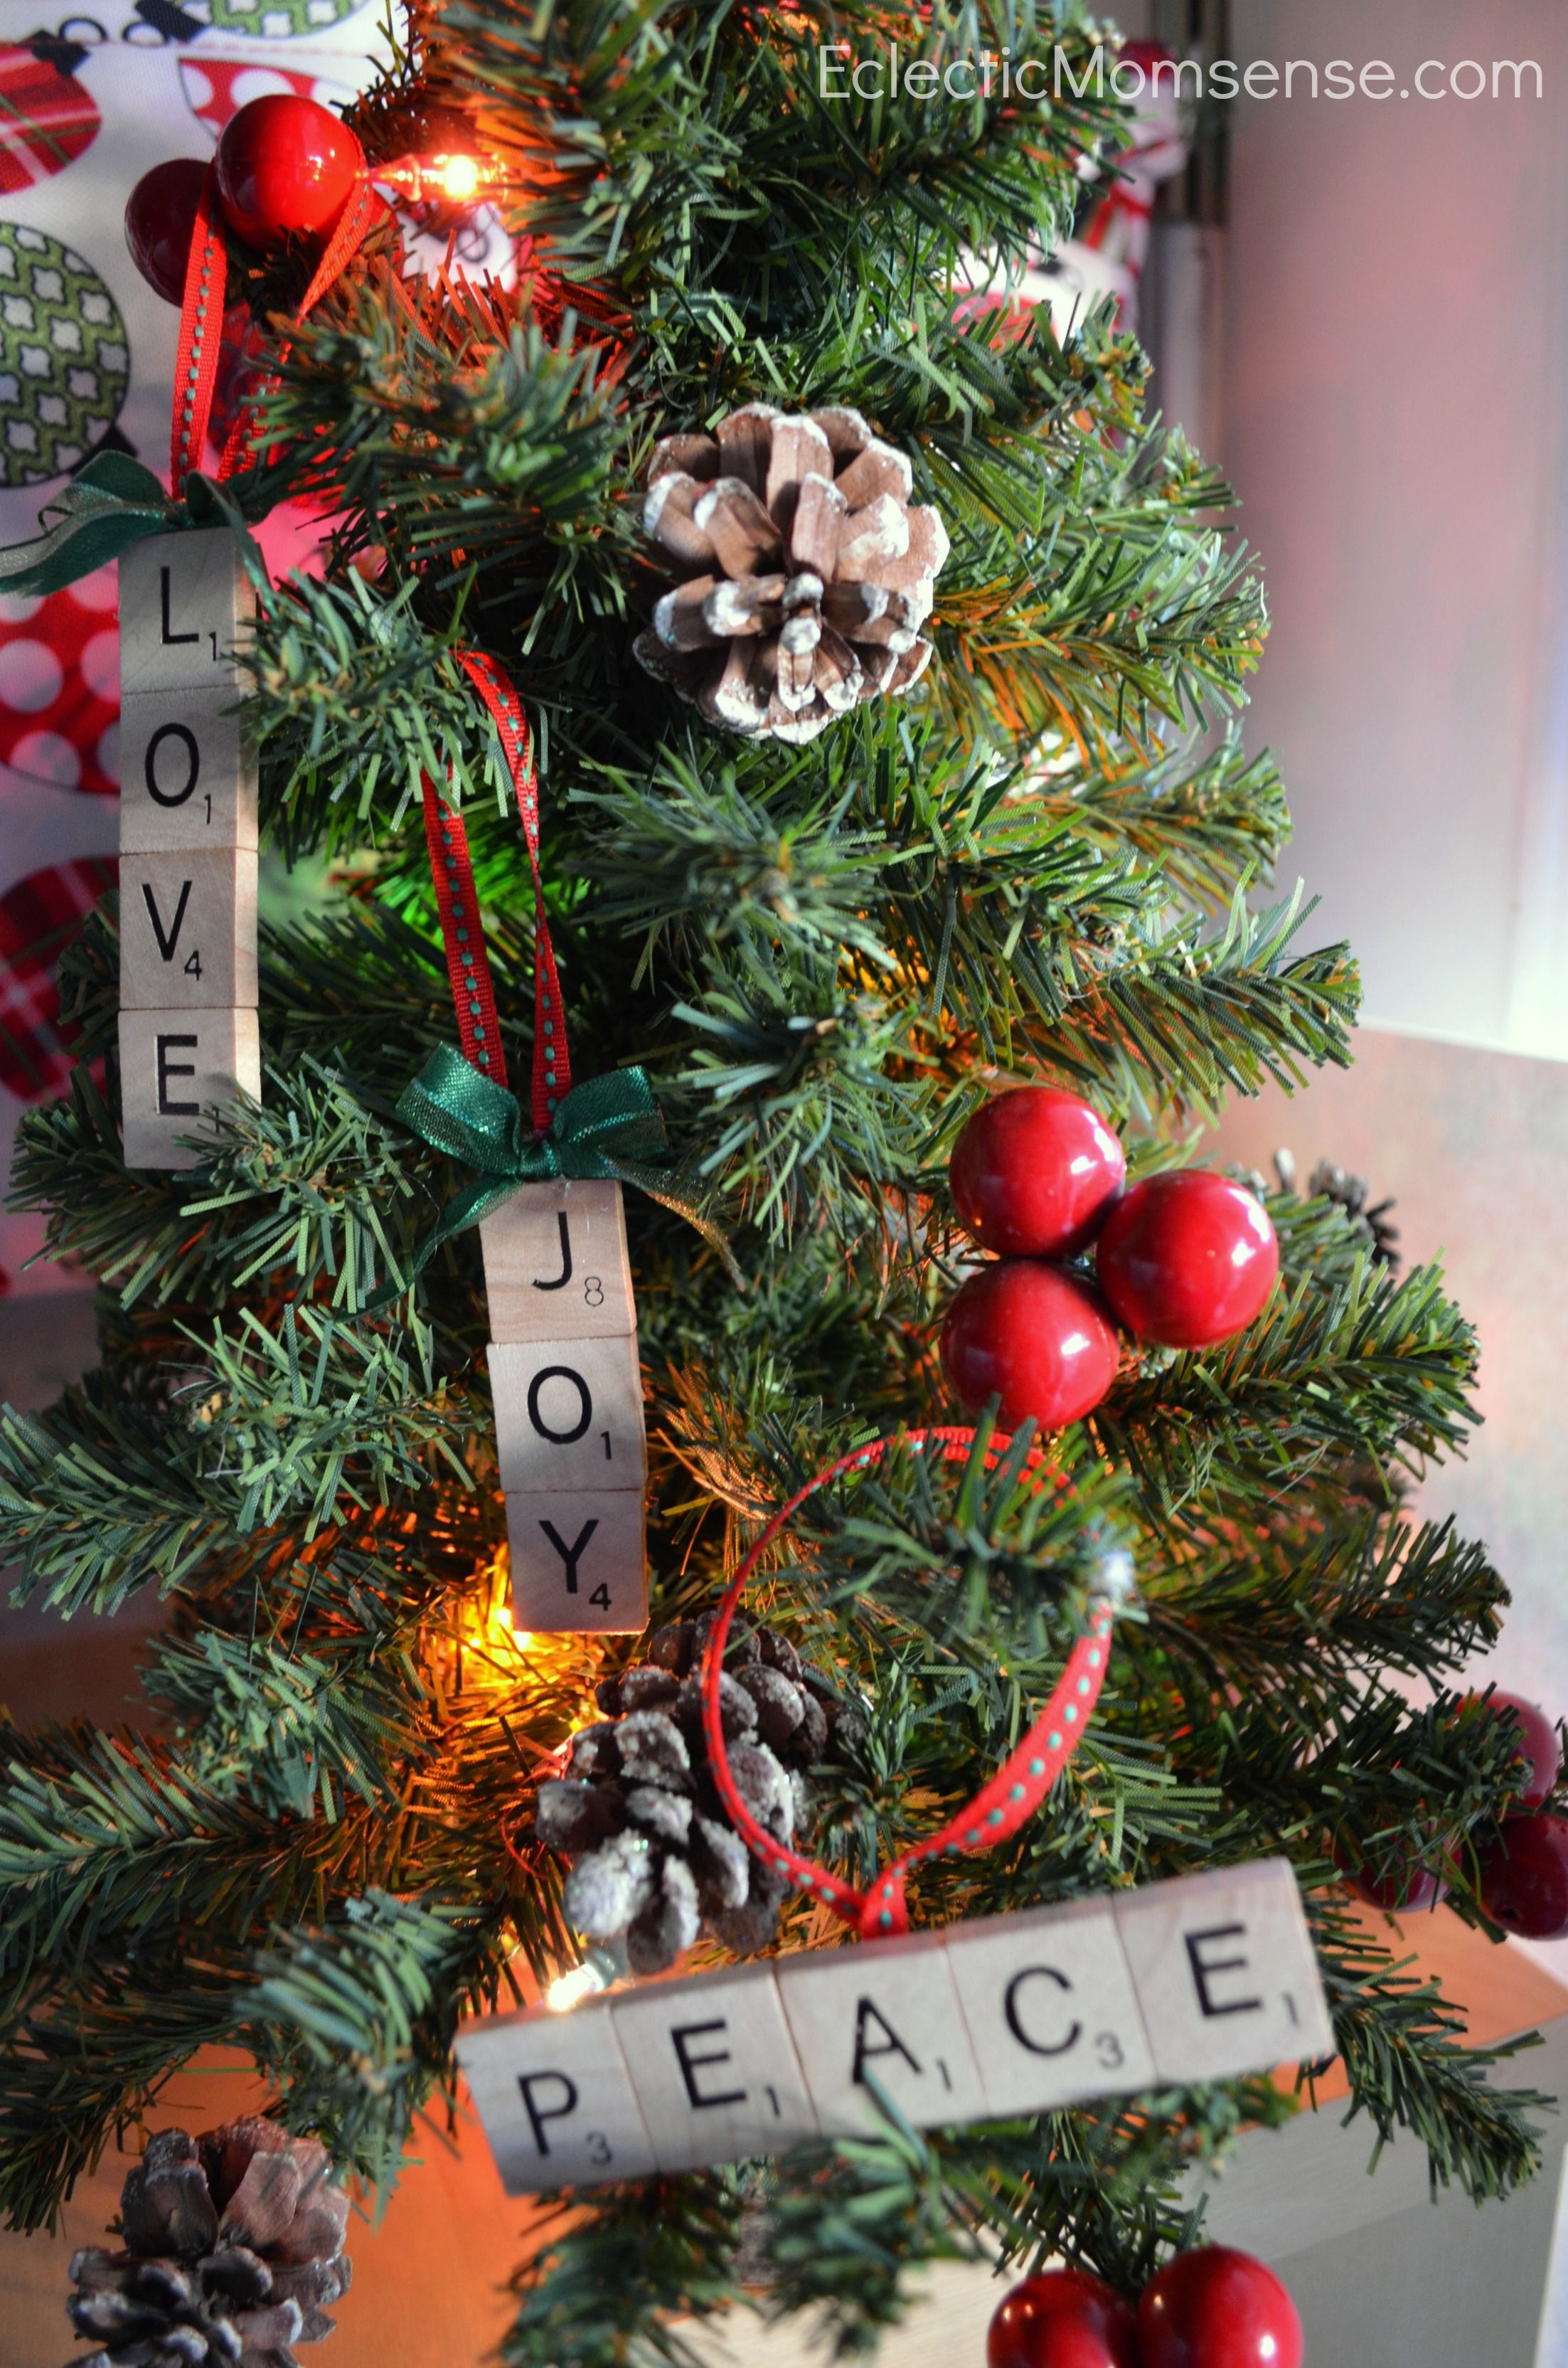 Add fun and whimsy to your tree this holiday season with these DIY Personalized Scrabble Ornaments!